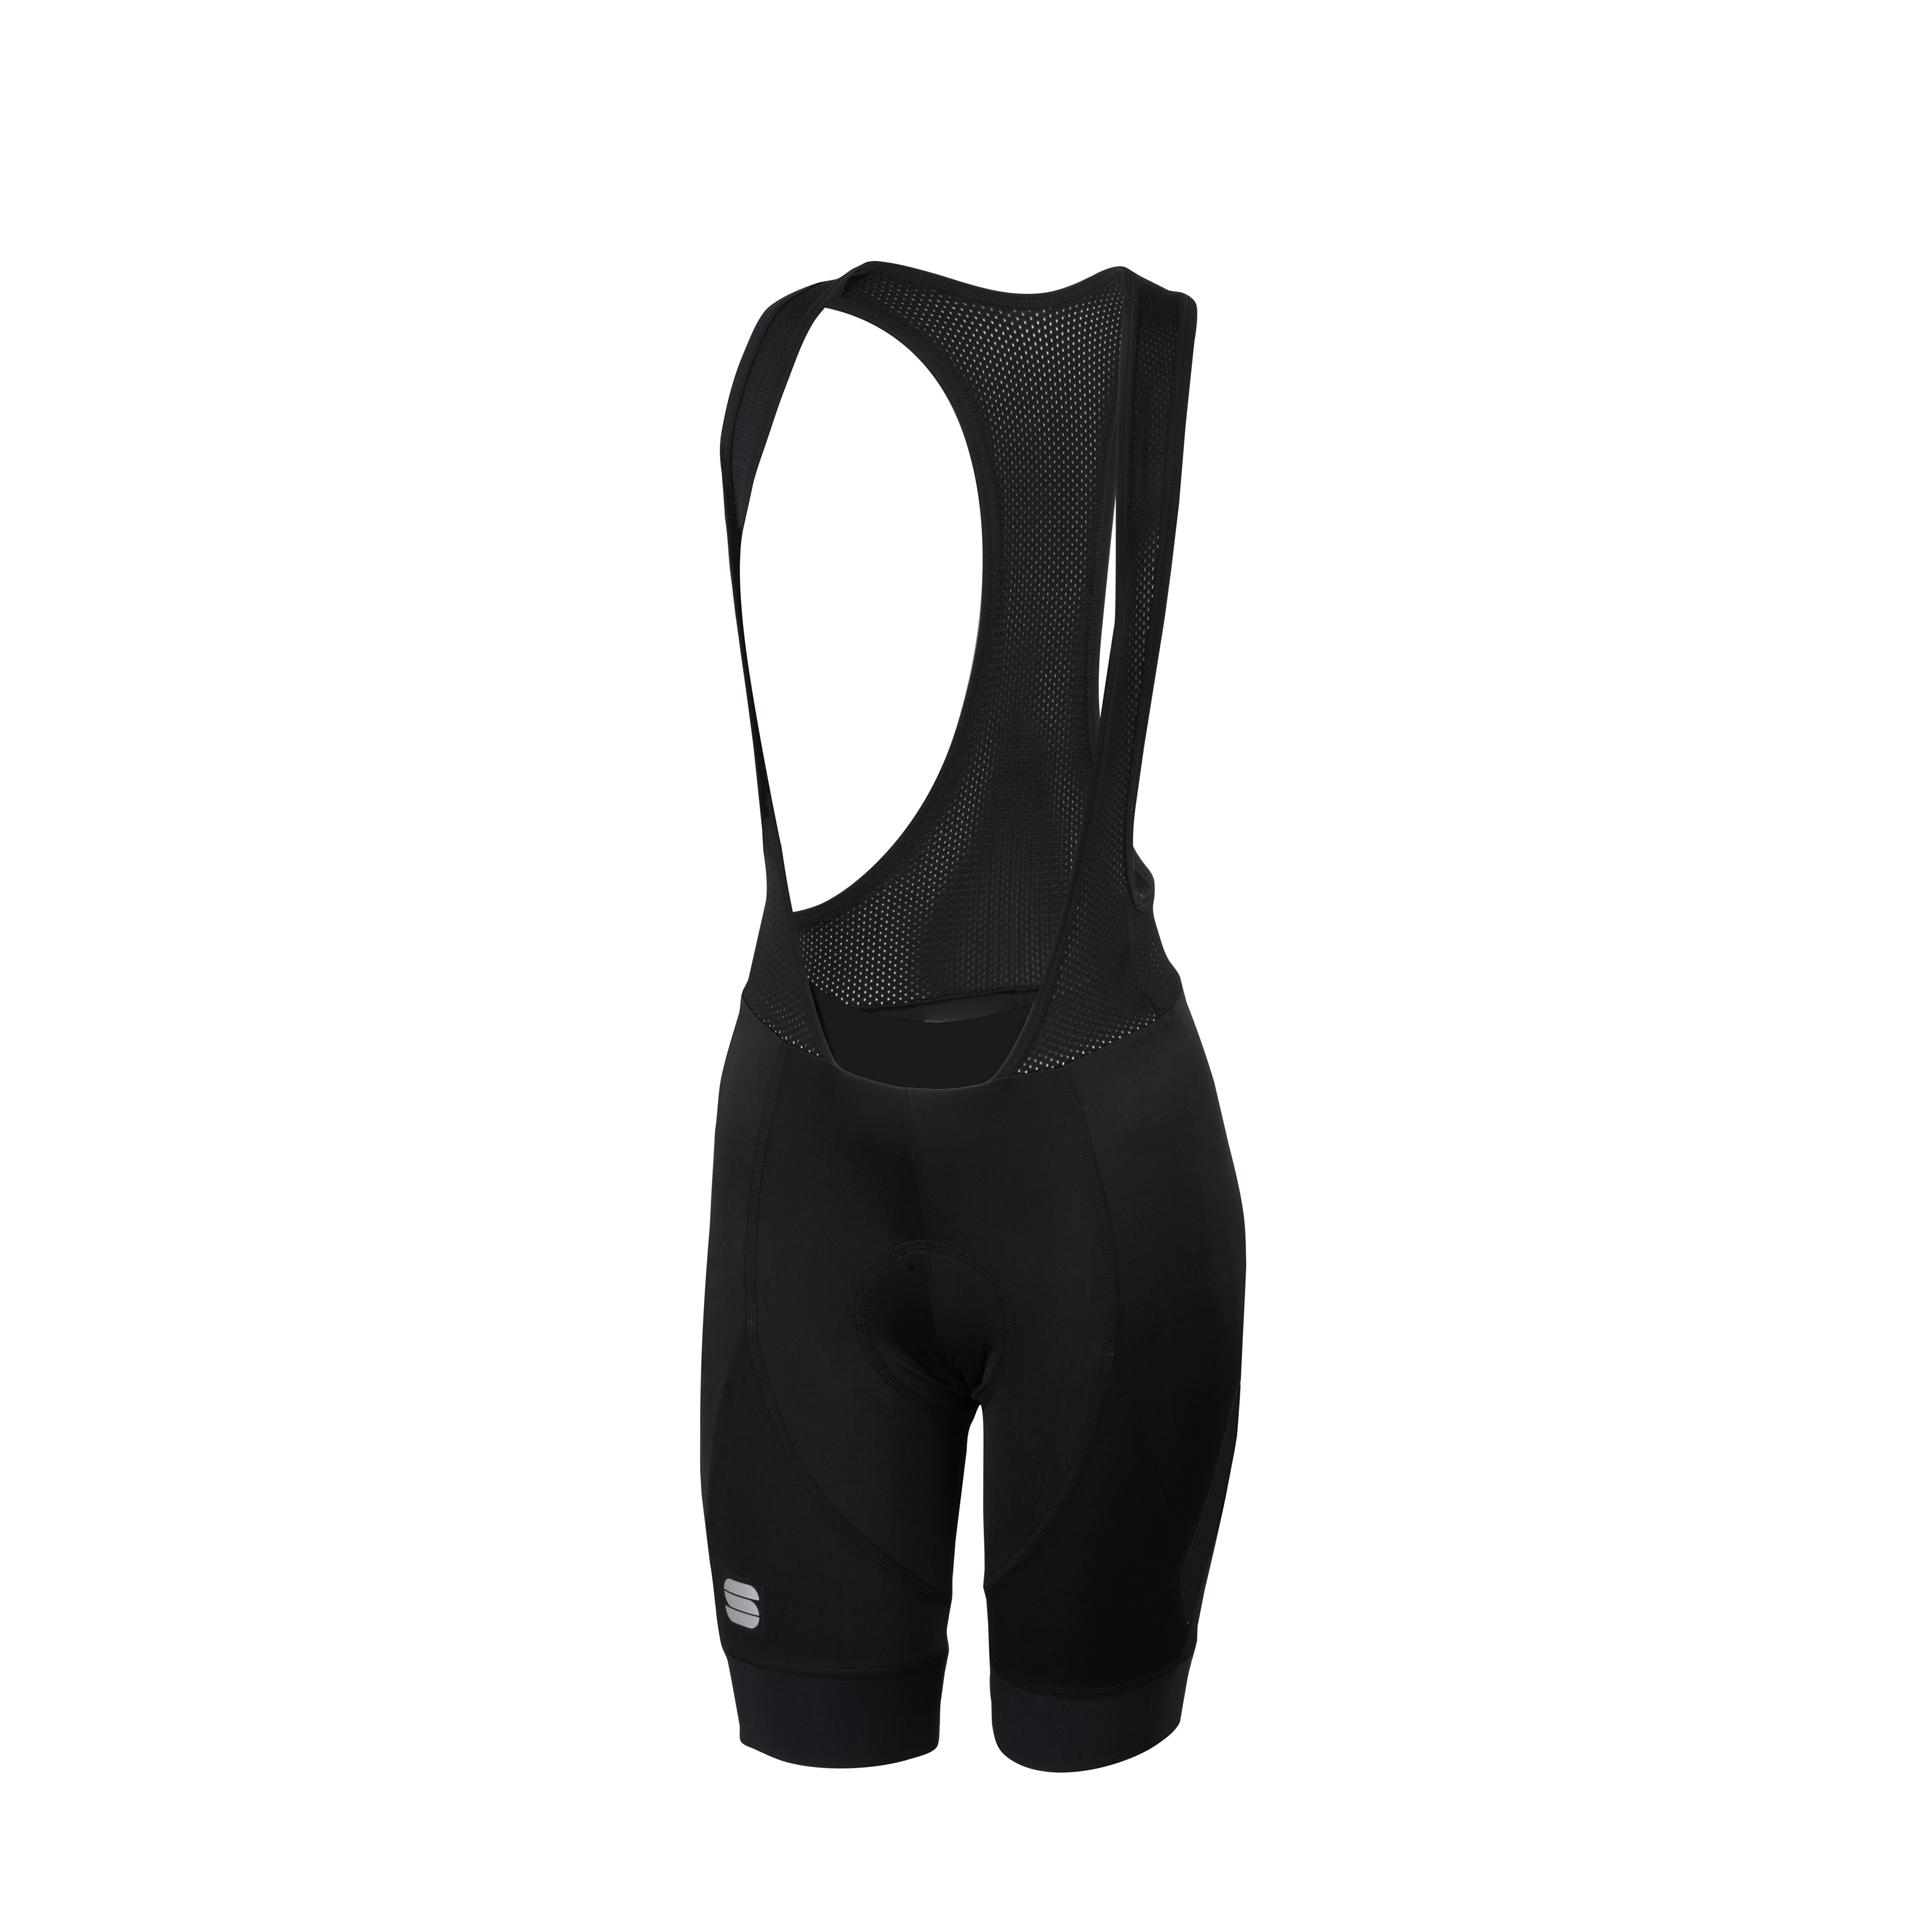 Sportful Fietsbroek met bretels - koersbroek Dames Zwart  / SF Neo W Bibshort-Black